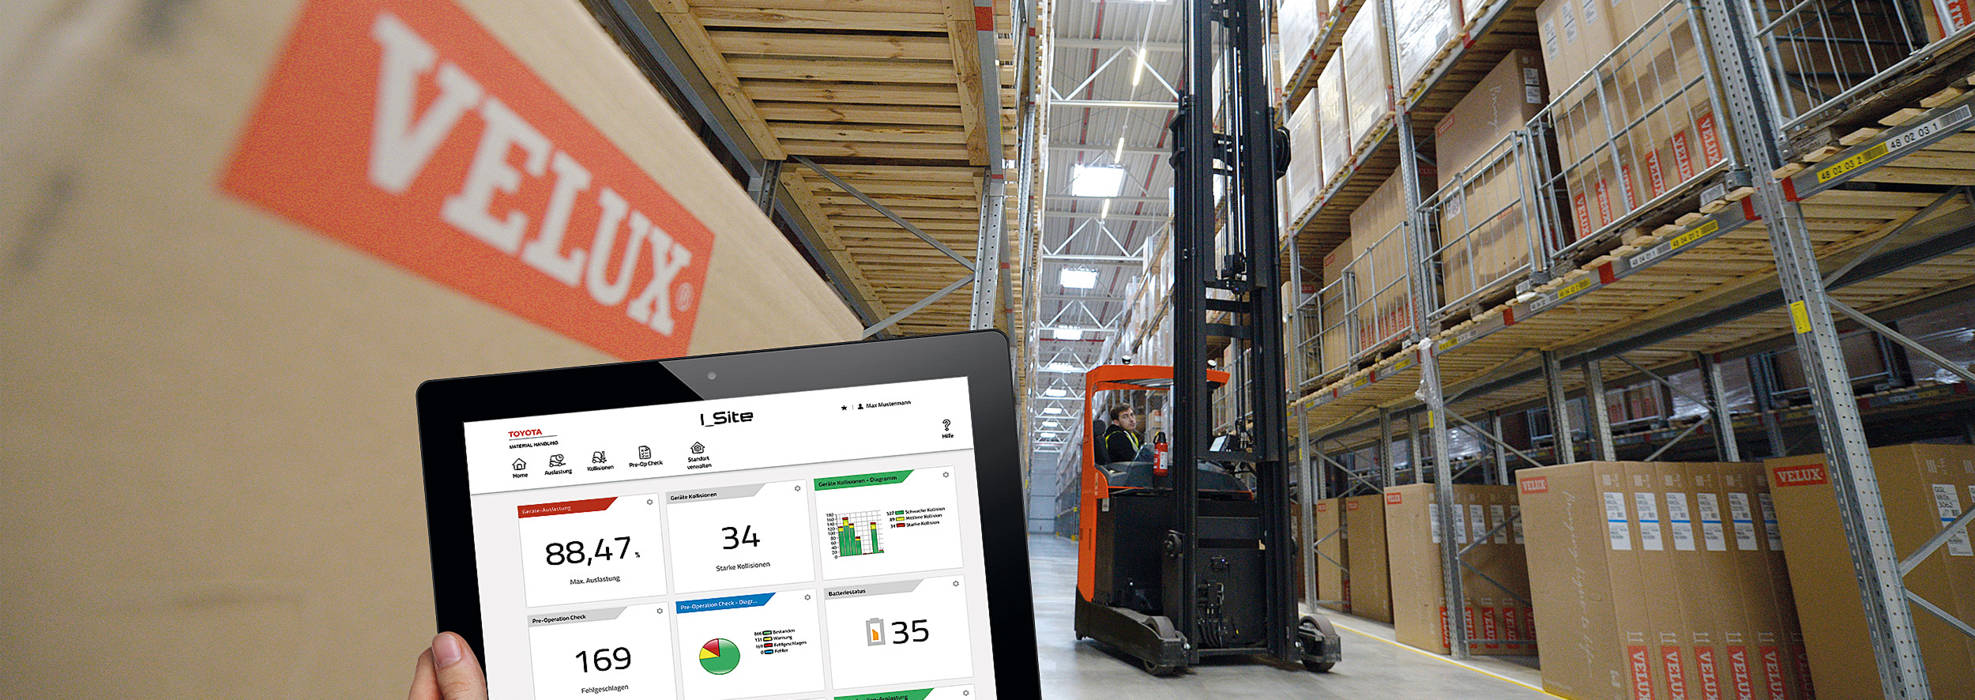 Worker using I_Site fleet management on a tablet, with reach truck in background